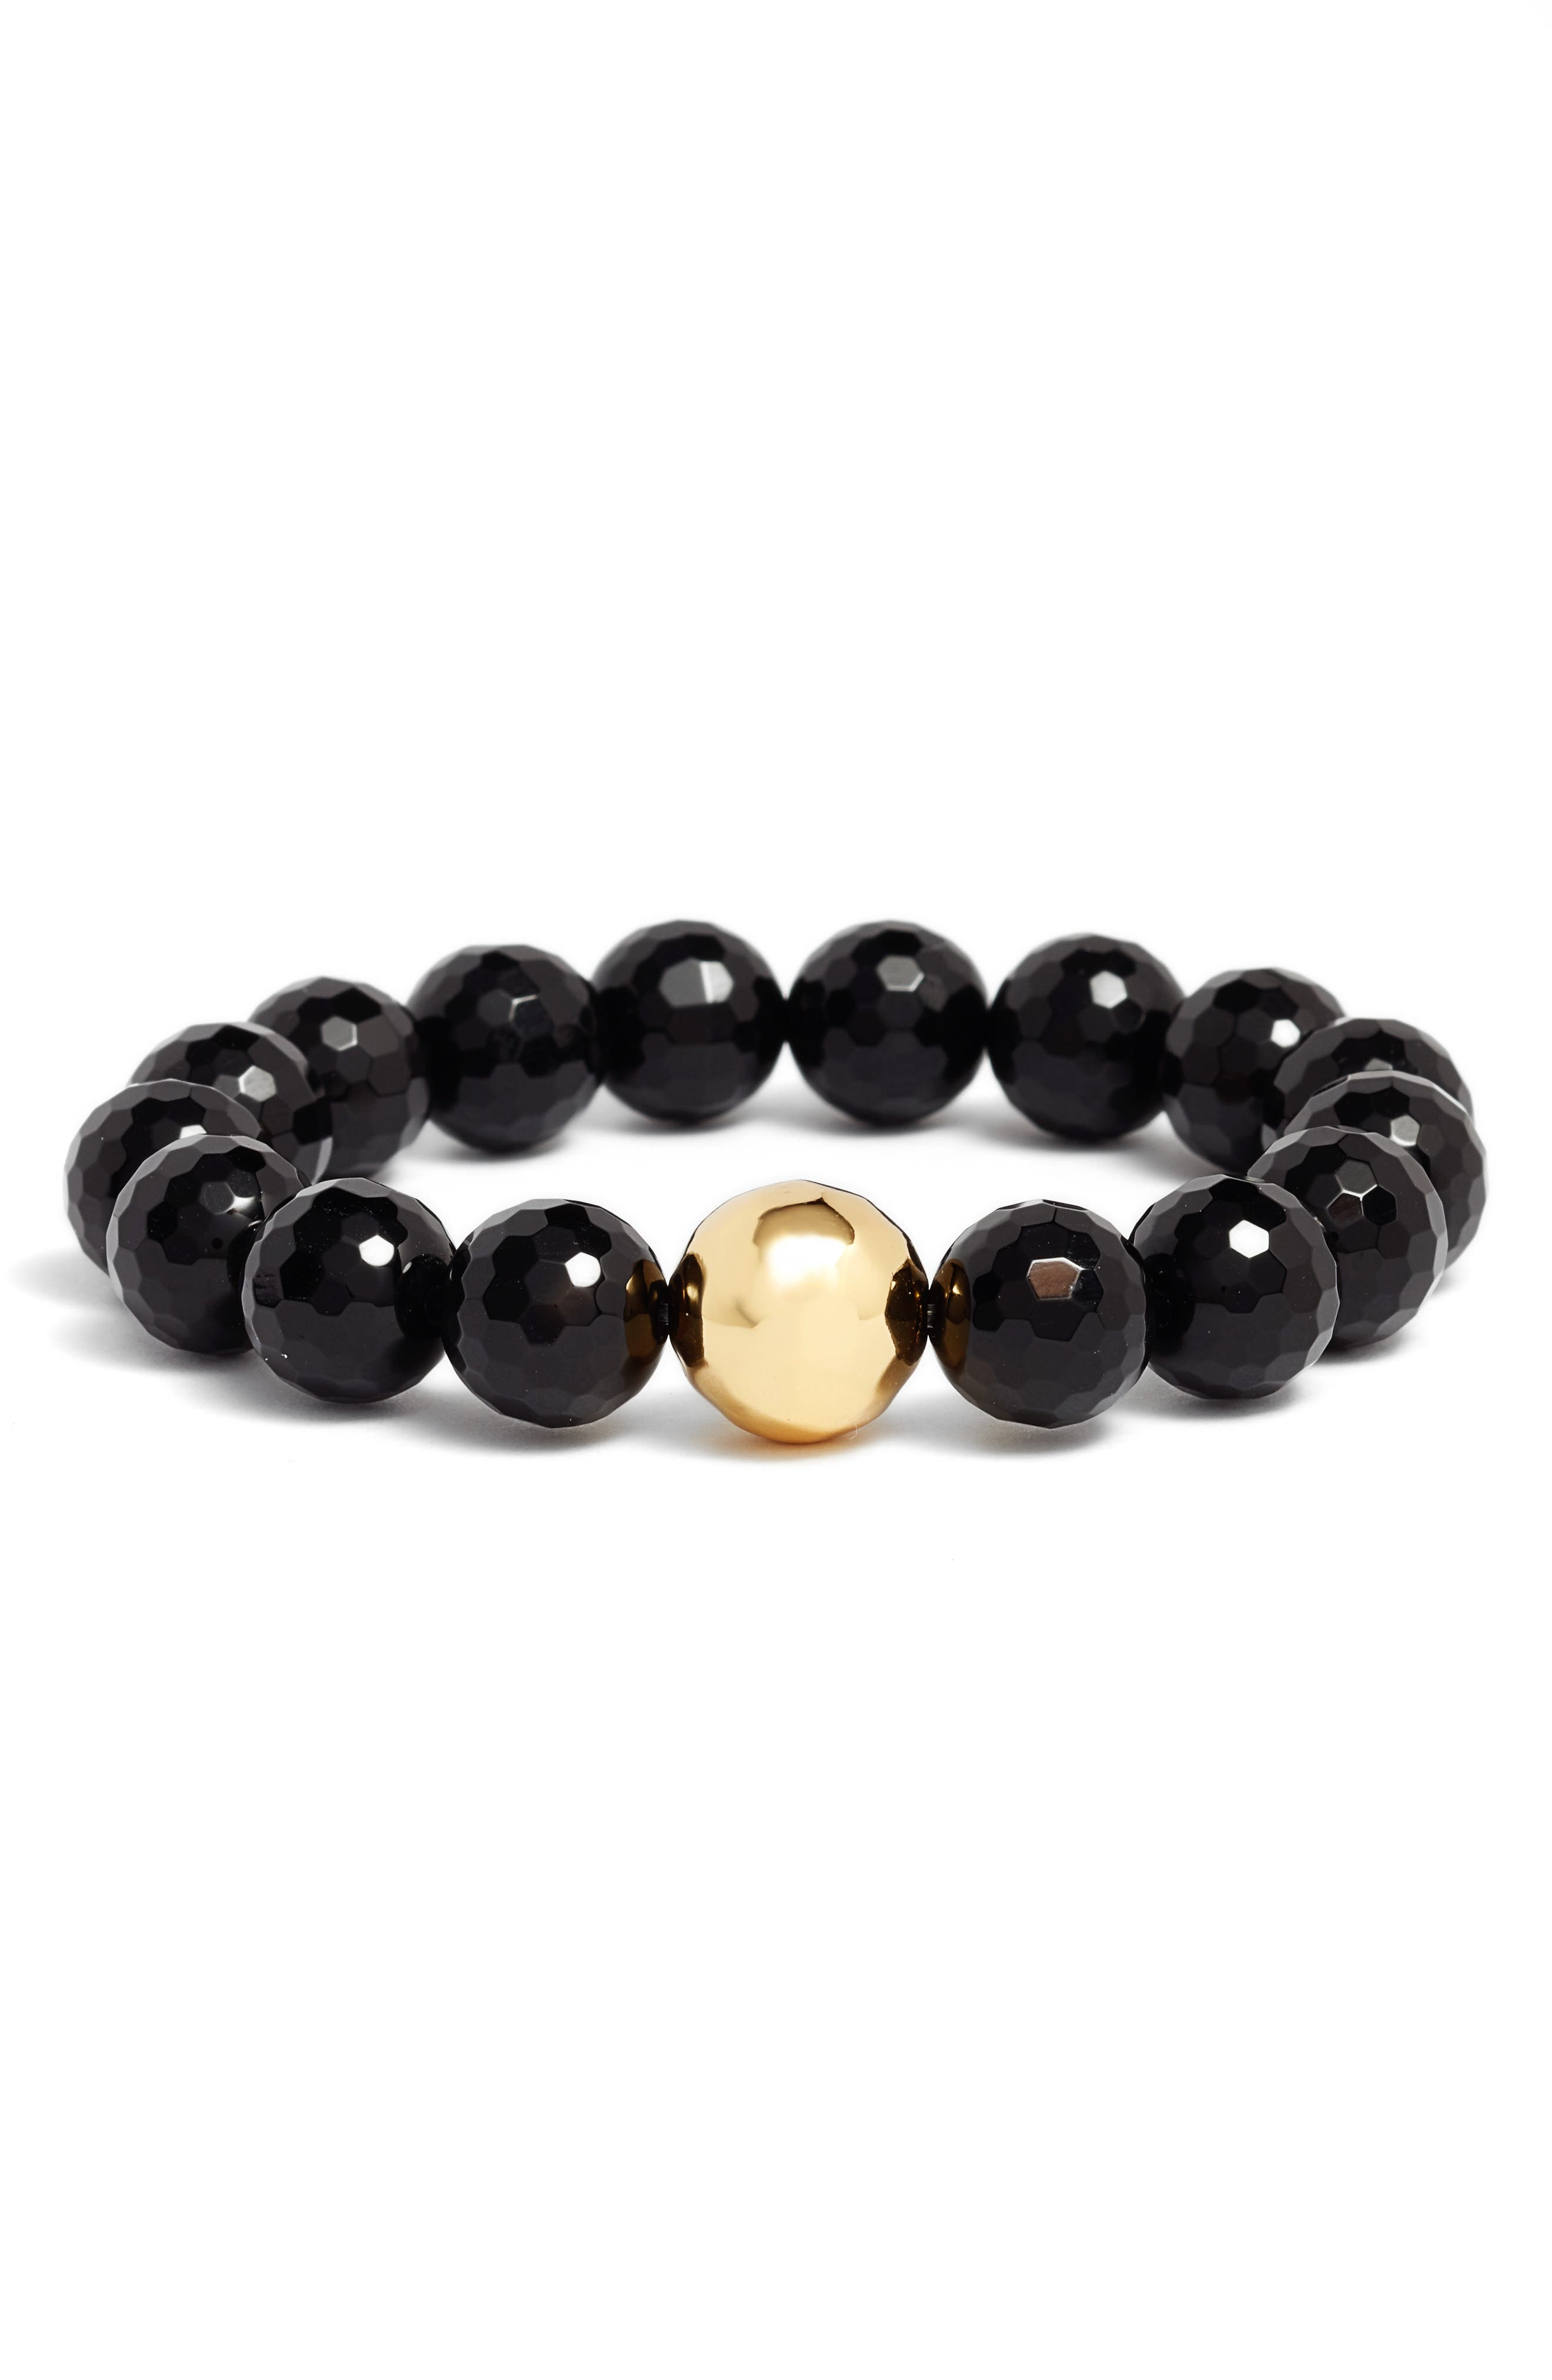 Power Gemstone Black Onyx Protection Bracelet,                             Main thumbnail 1, color,                             Black Onyx/ Gold